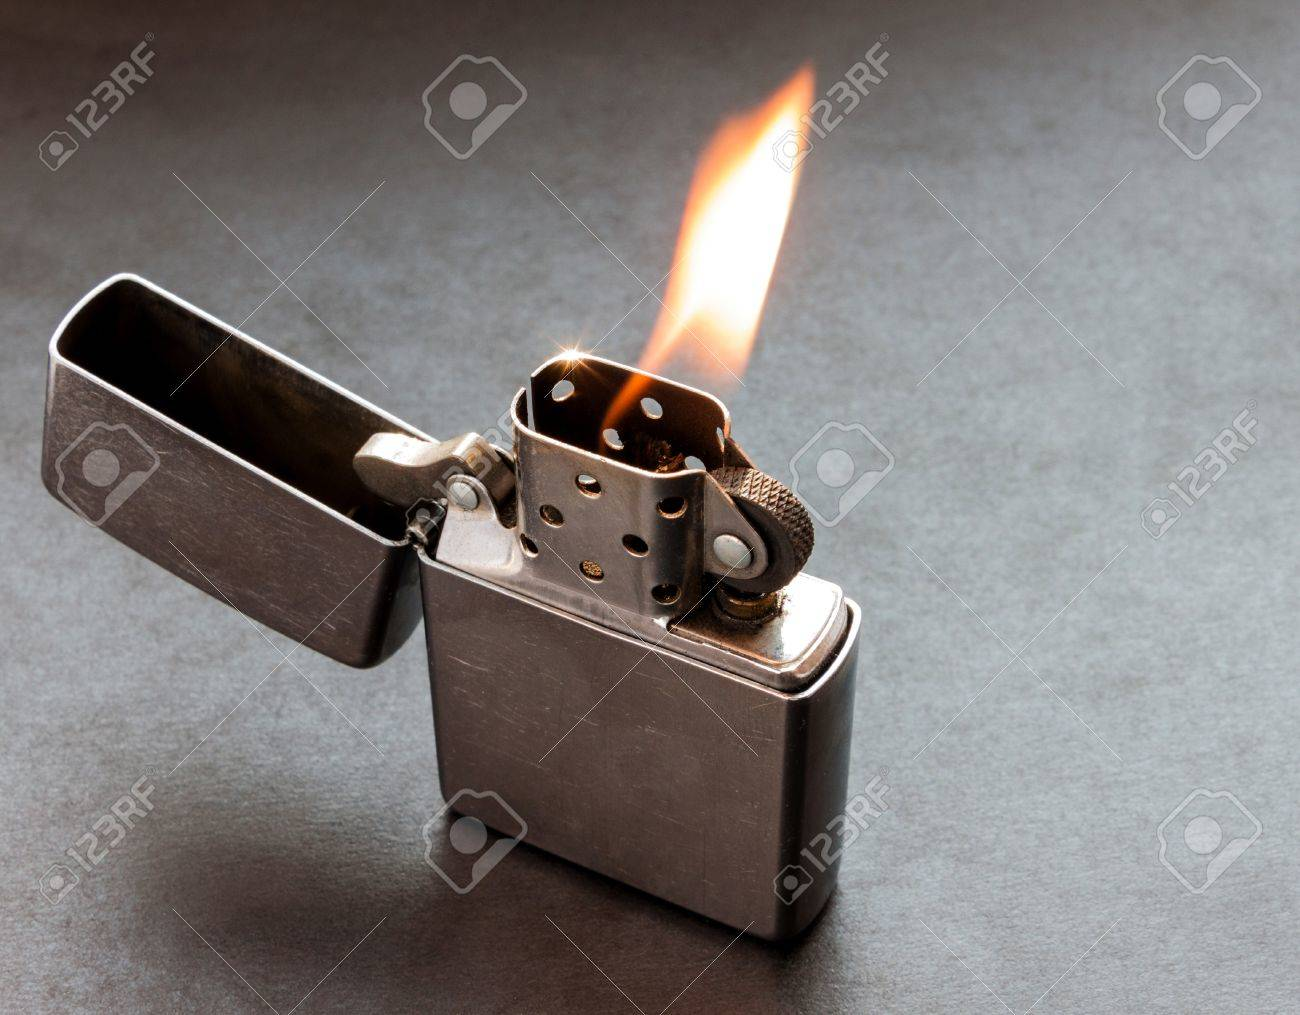 Silver metal lighter on dark background with flame. Stock Photo - 18385730